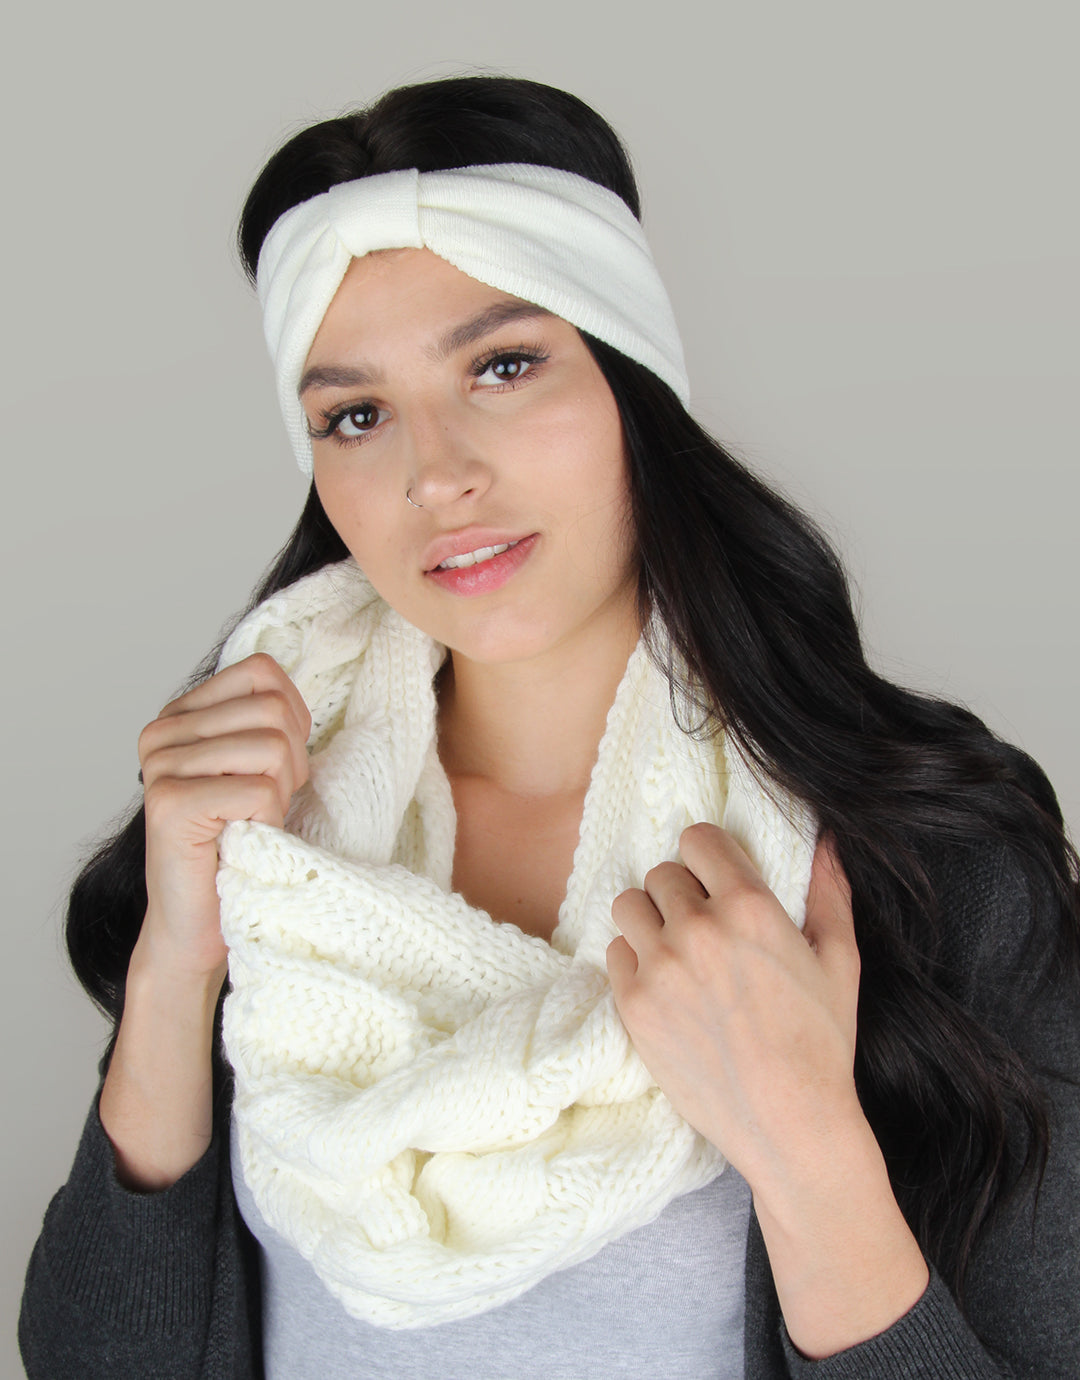 BANDED Women's Premium Headbands + Hair Accessories - Ice Rink - Winter Headband